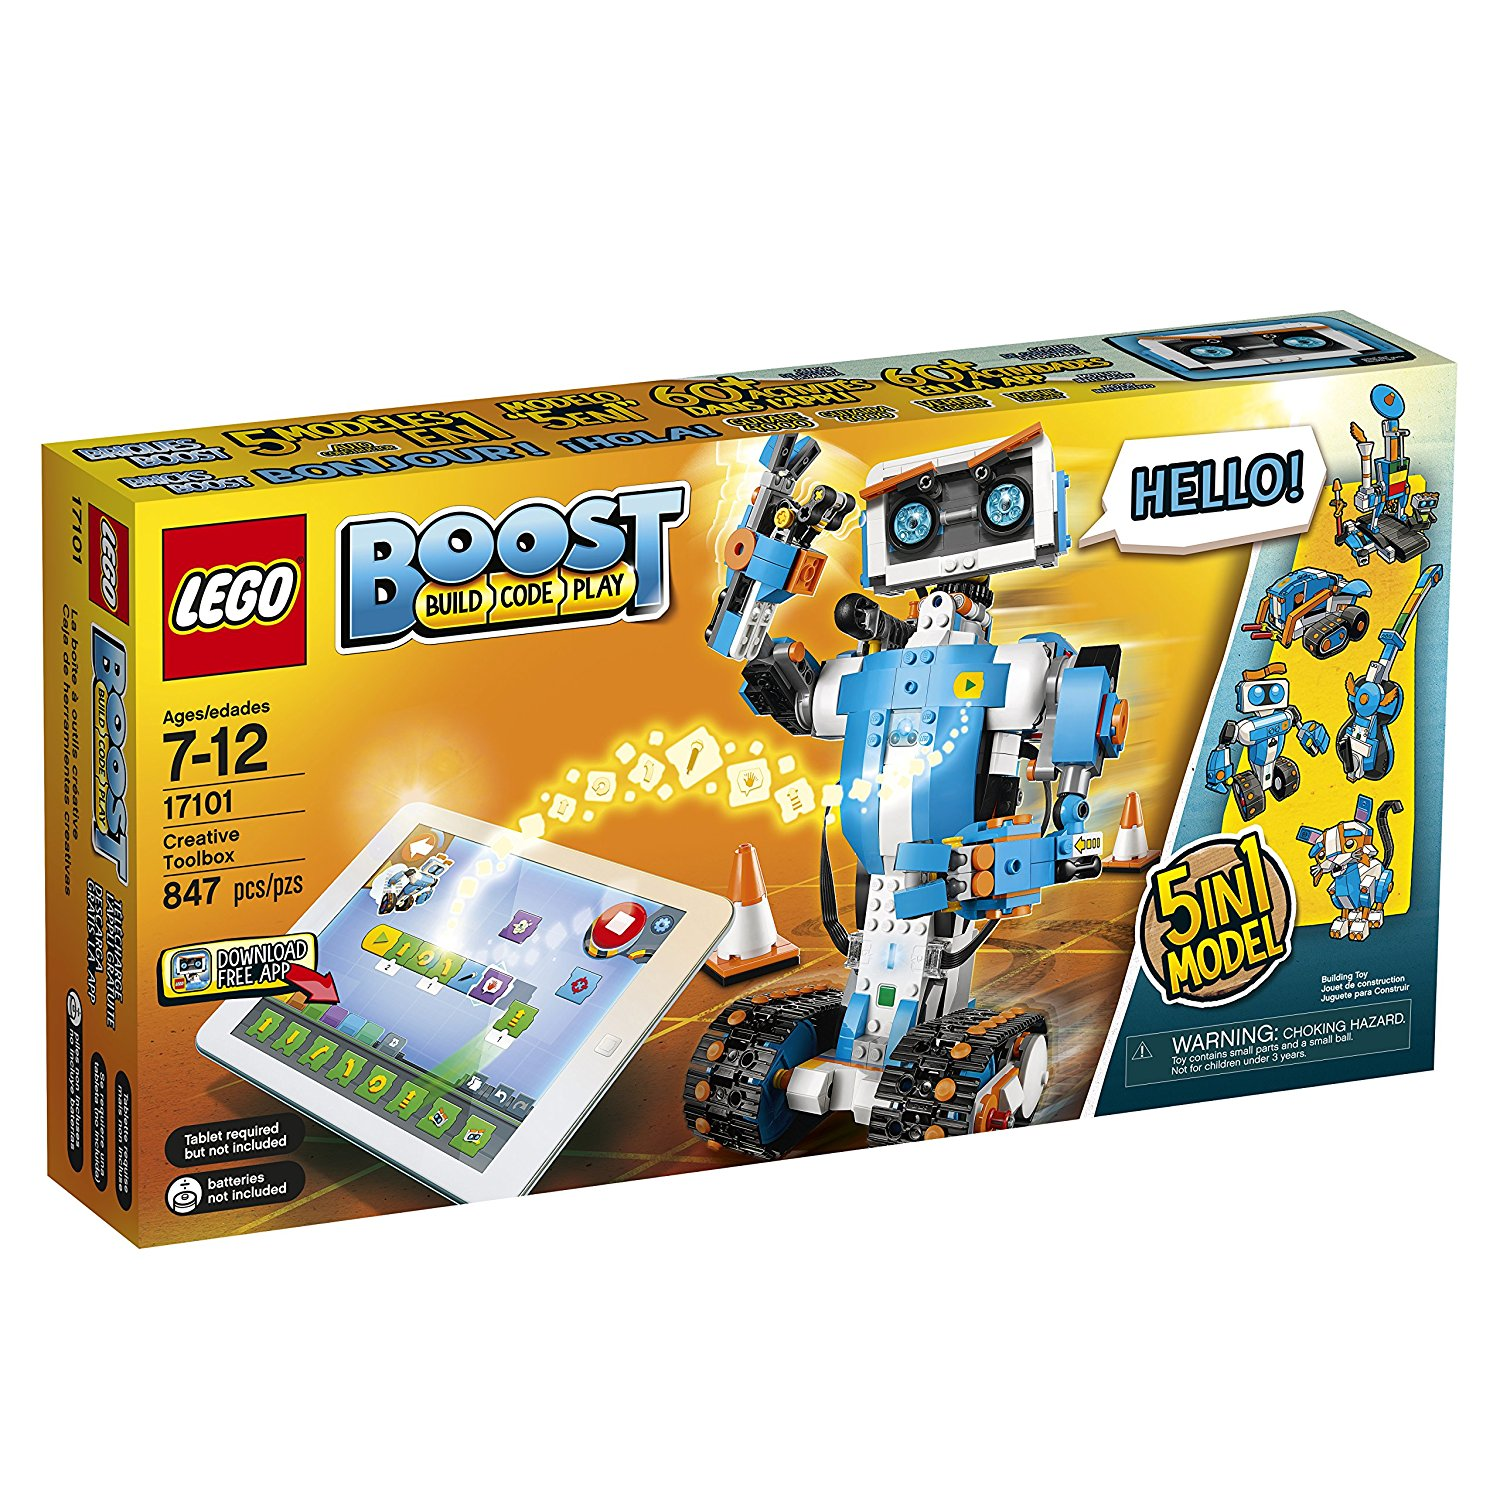 Lego Creative Boost Toolbox A Major Player At The Toy